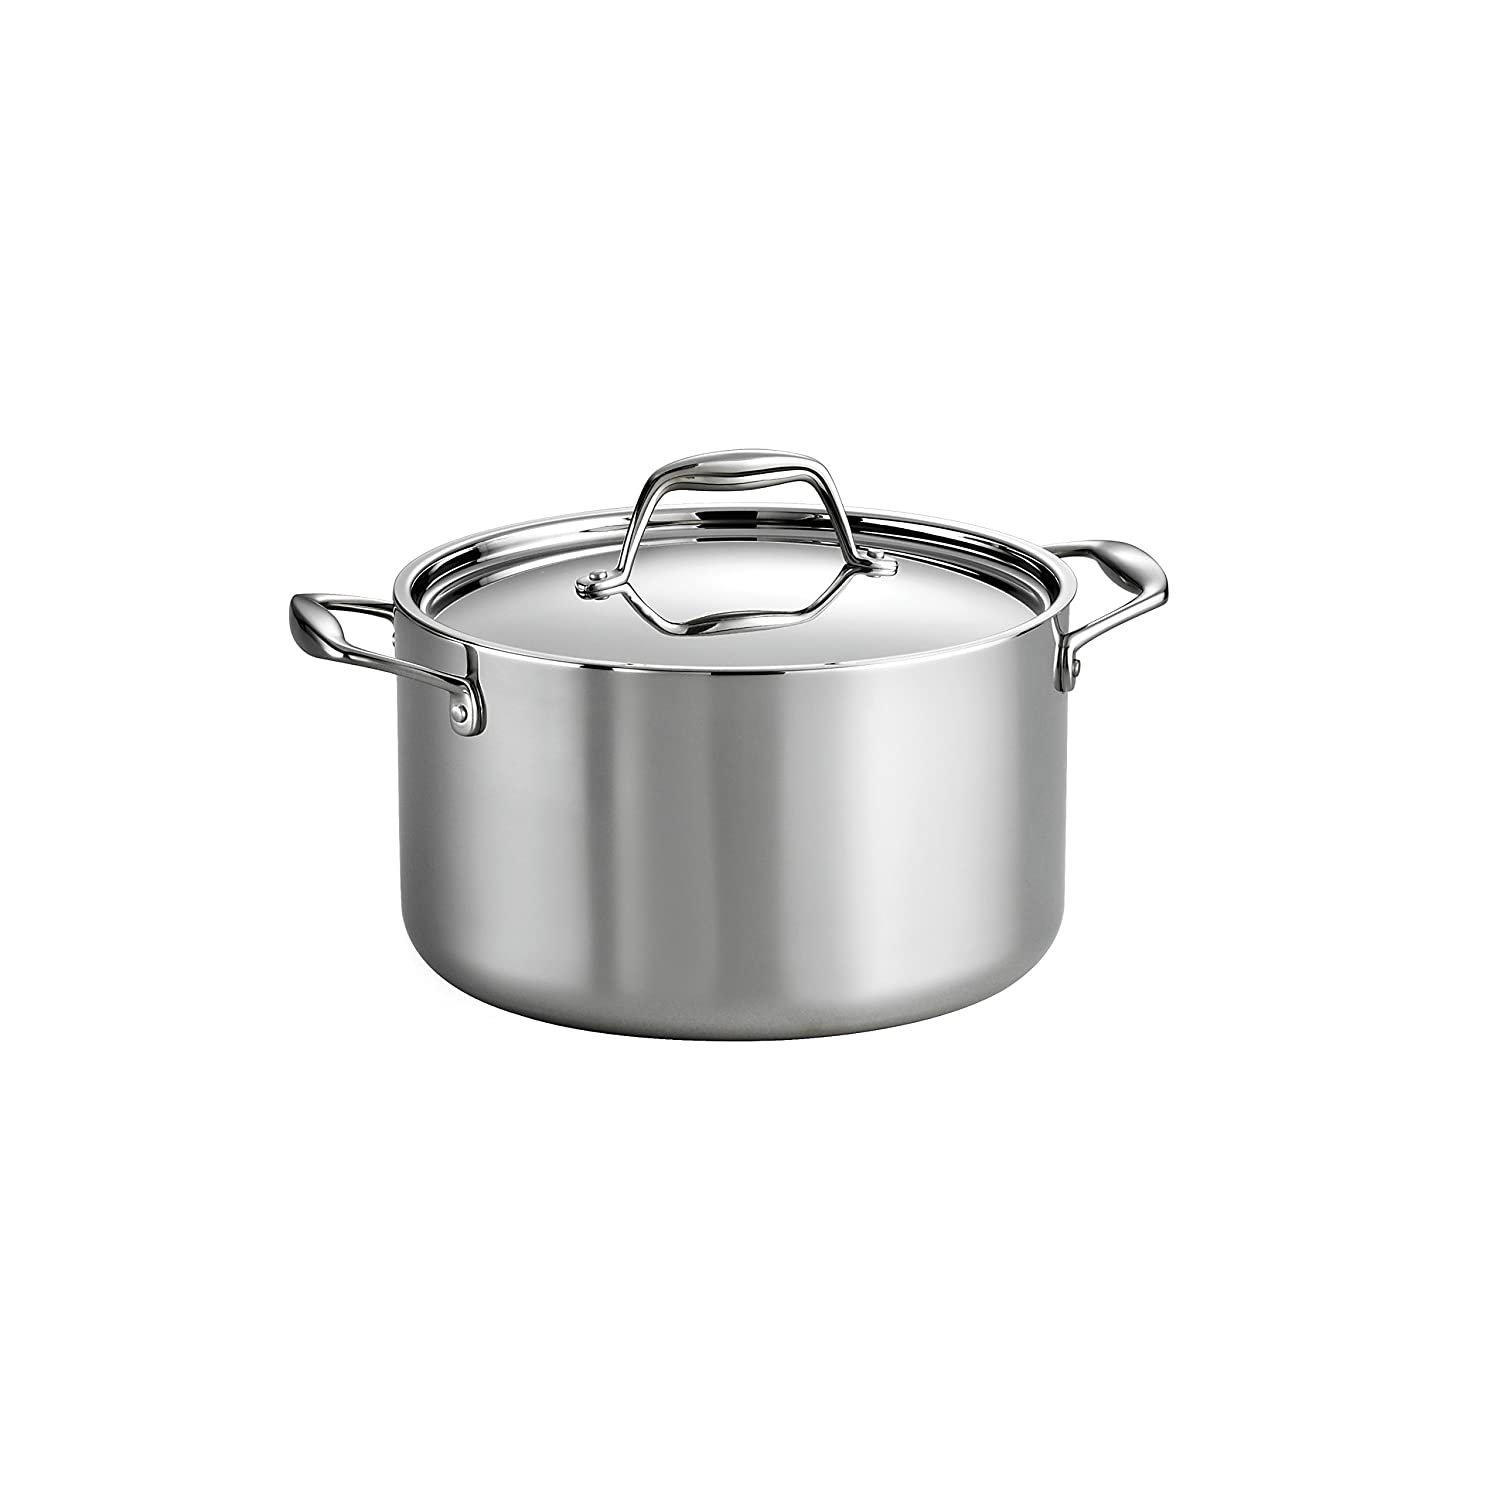 Tramontina 80116/040DS Covered Sauce Pot, 6-Quart, Stainless